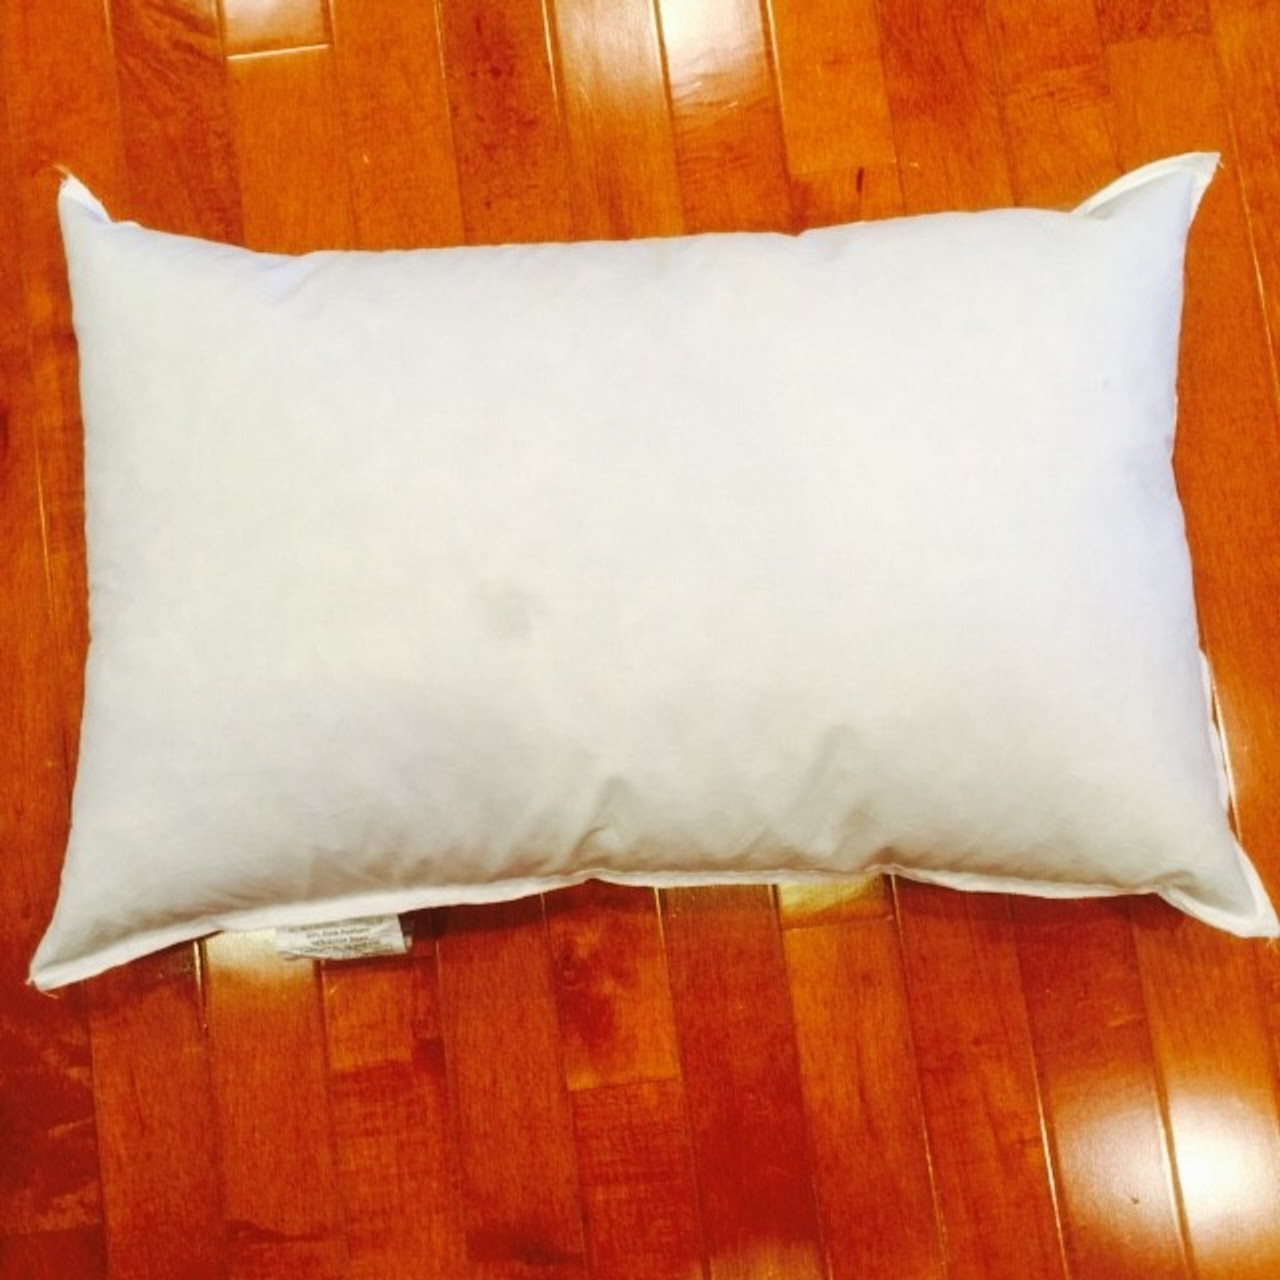 40 X 40 4040 Down Feather Pillow Form PillowCubes Simple 14x18 Pillow Insert